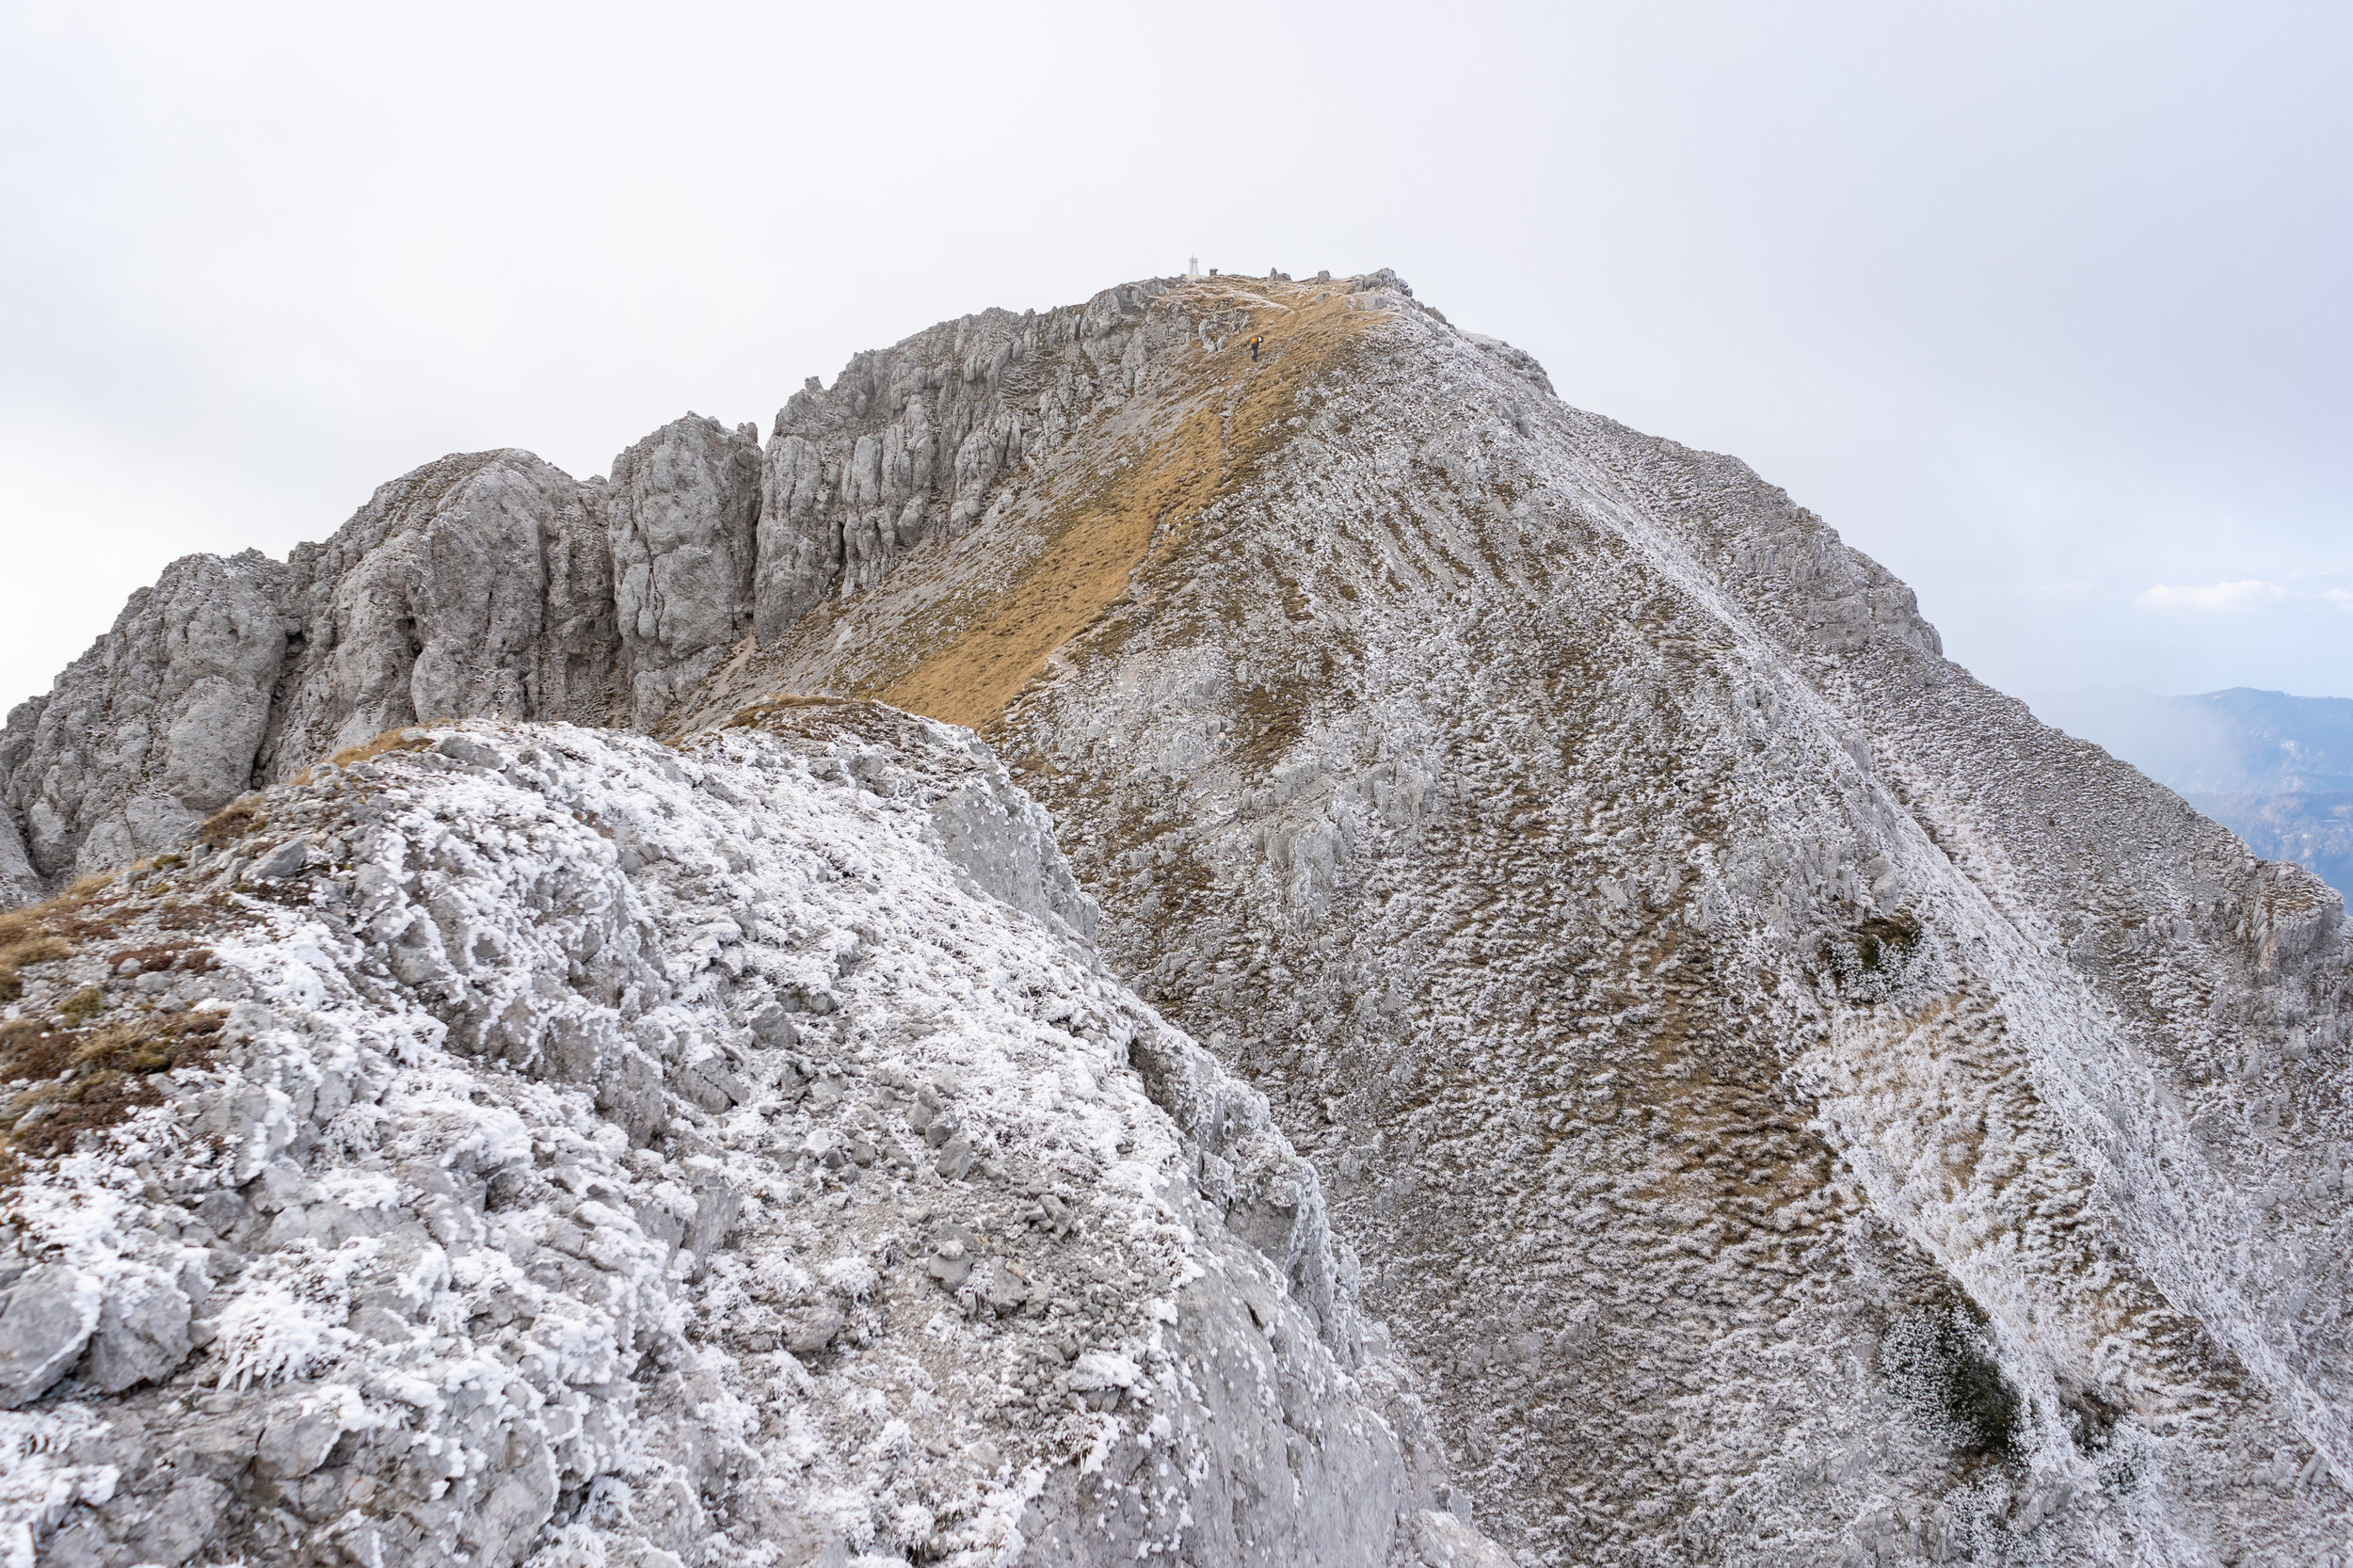 The northern slopes are already covered in frost. Up ahead is Mt. Veliko Kladivo (2094 m).